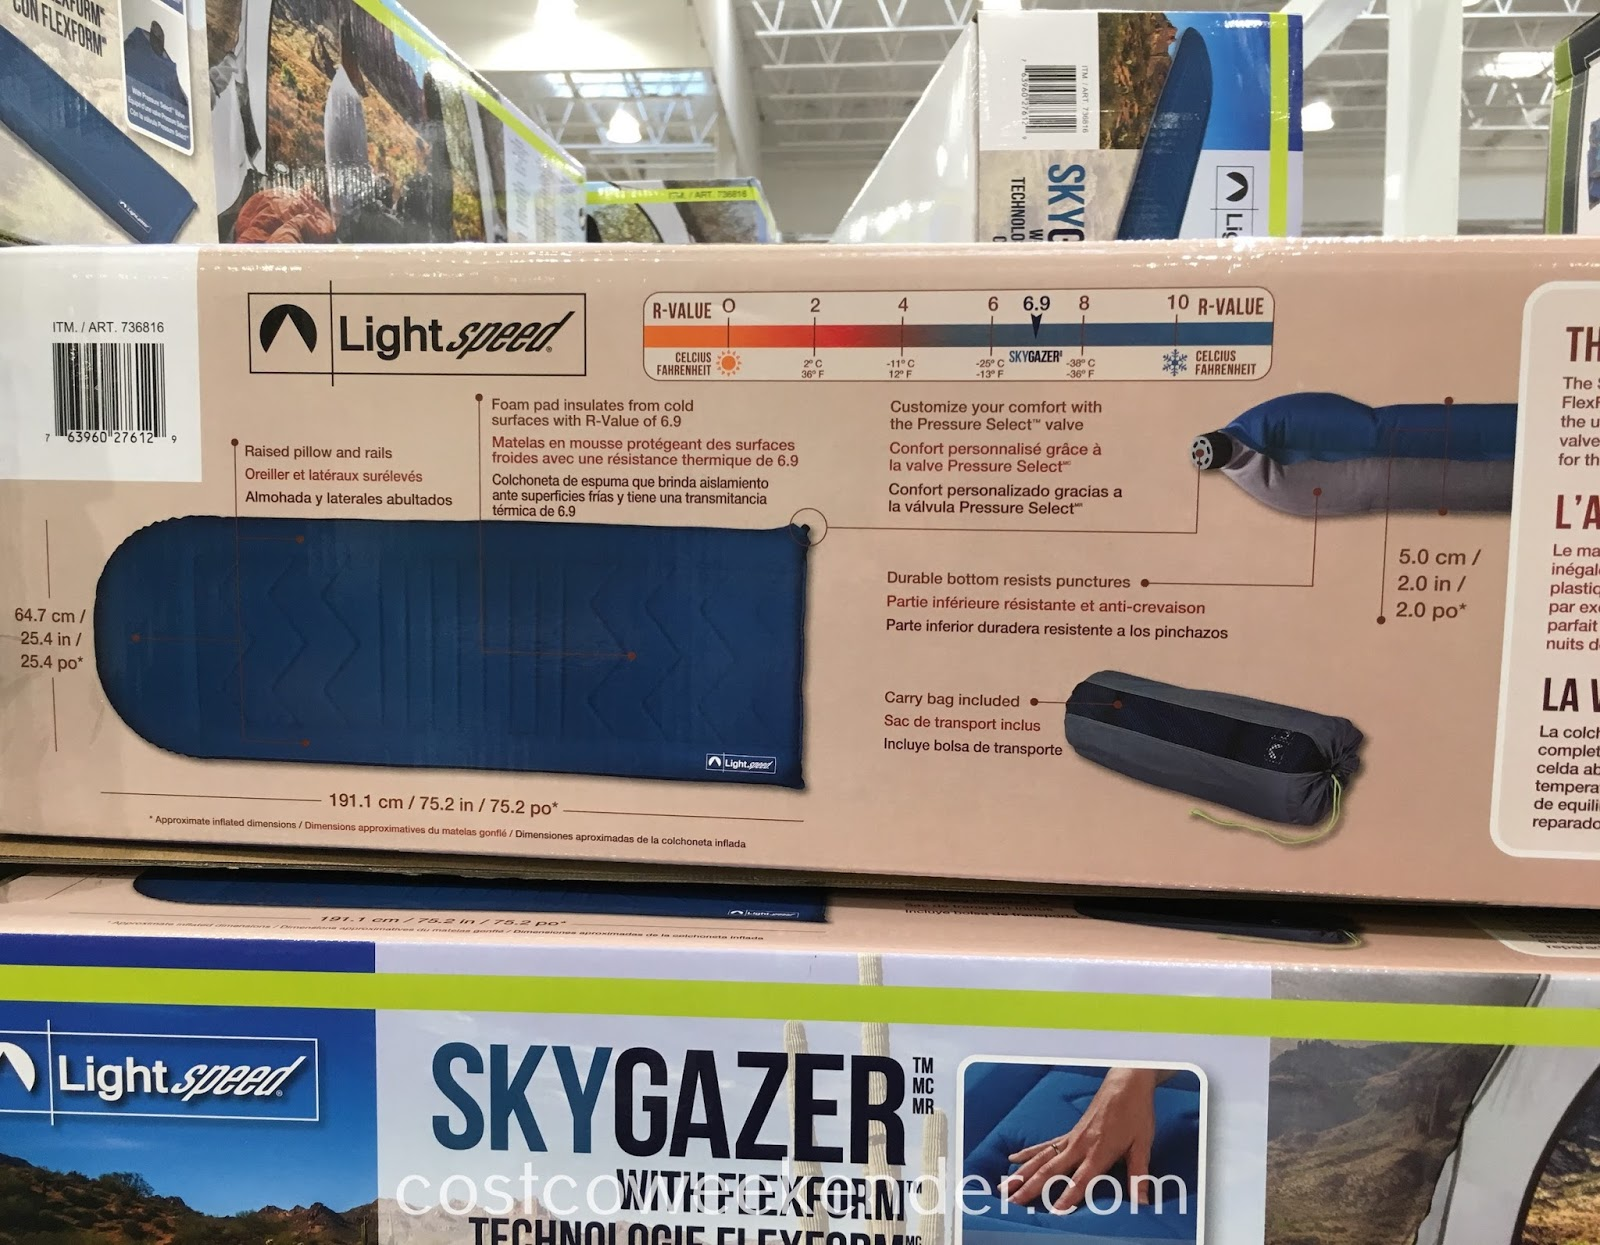 Costco 736816 - Lightspeed Outdoors Skygazer Self-Inflating Sleep Pad - Who says roughing it needs to be uncomfortable?